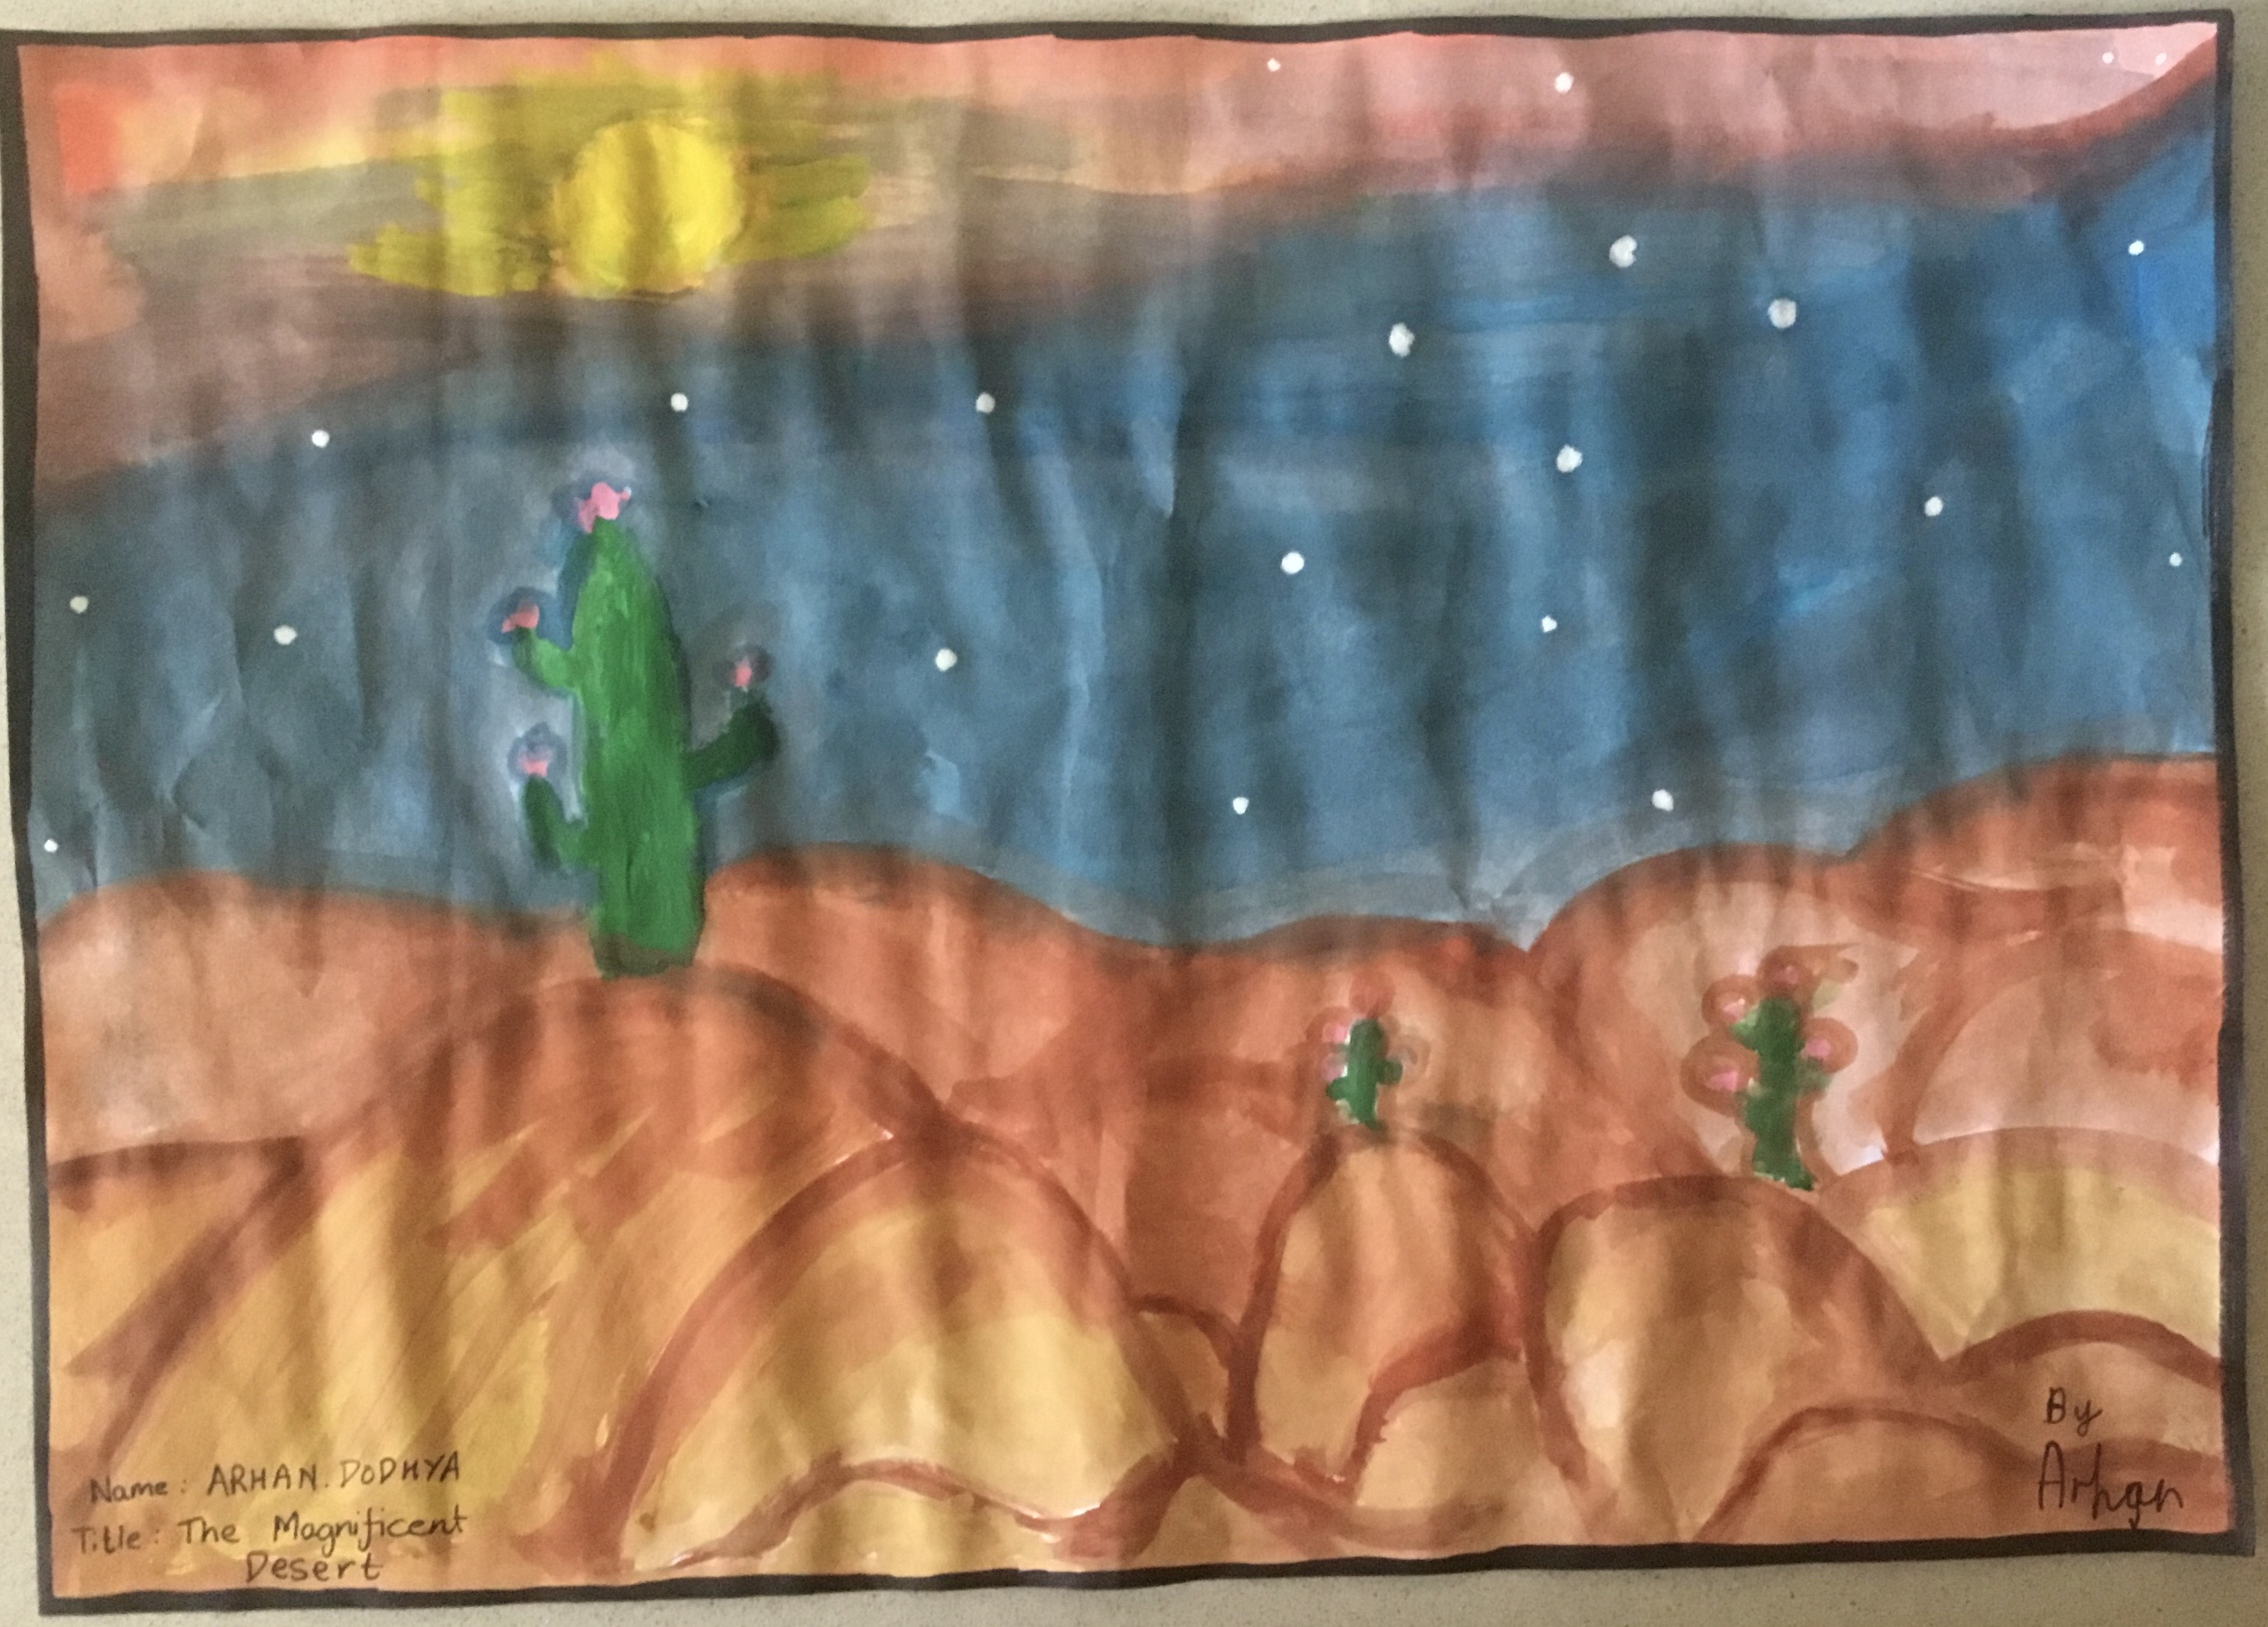 The Magnificent Desert by Arhan Dodhya